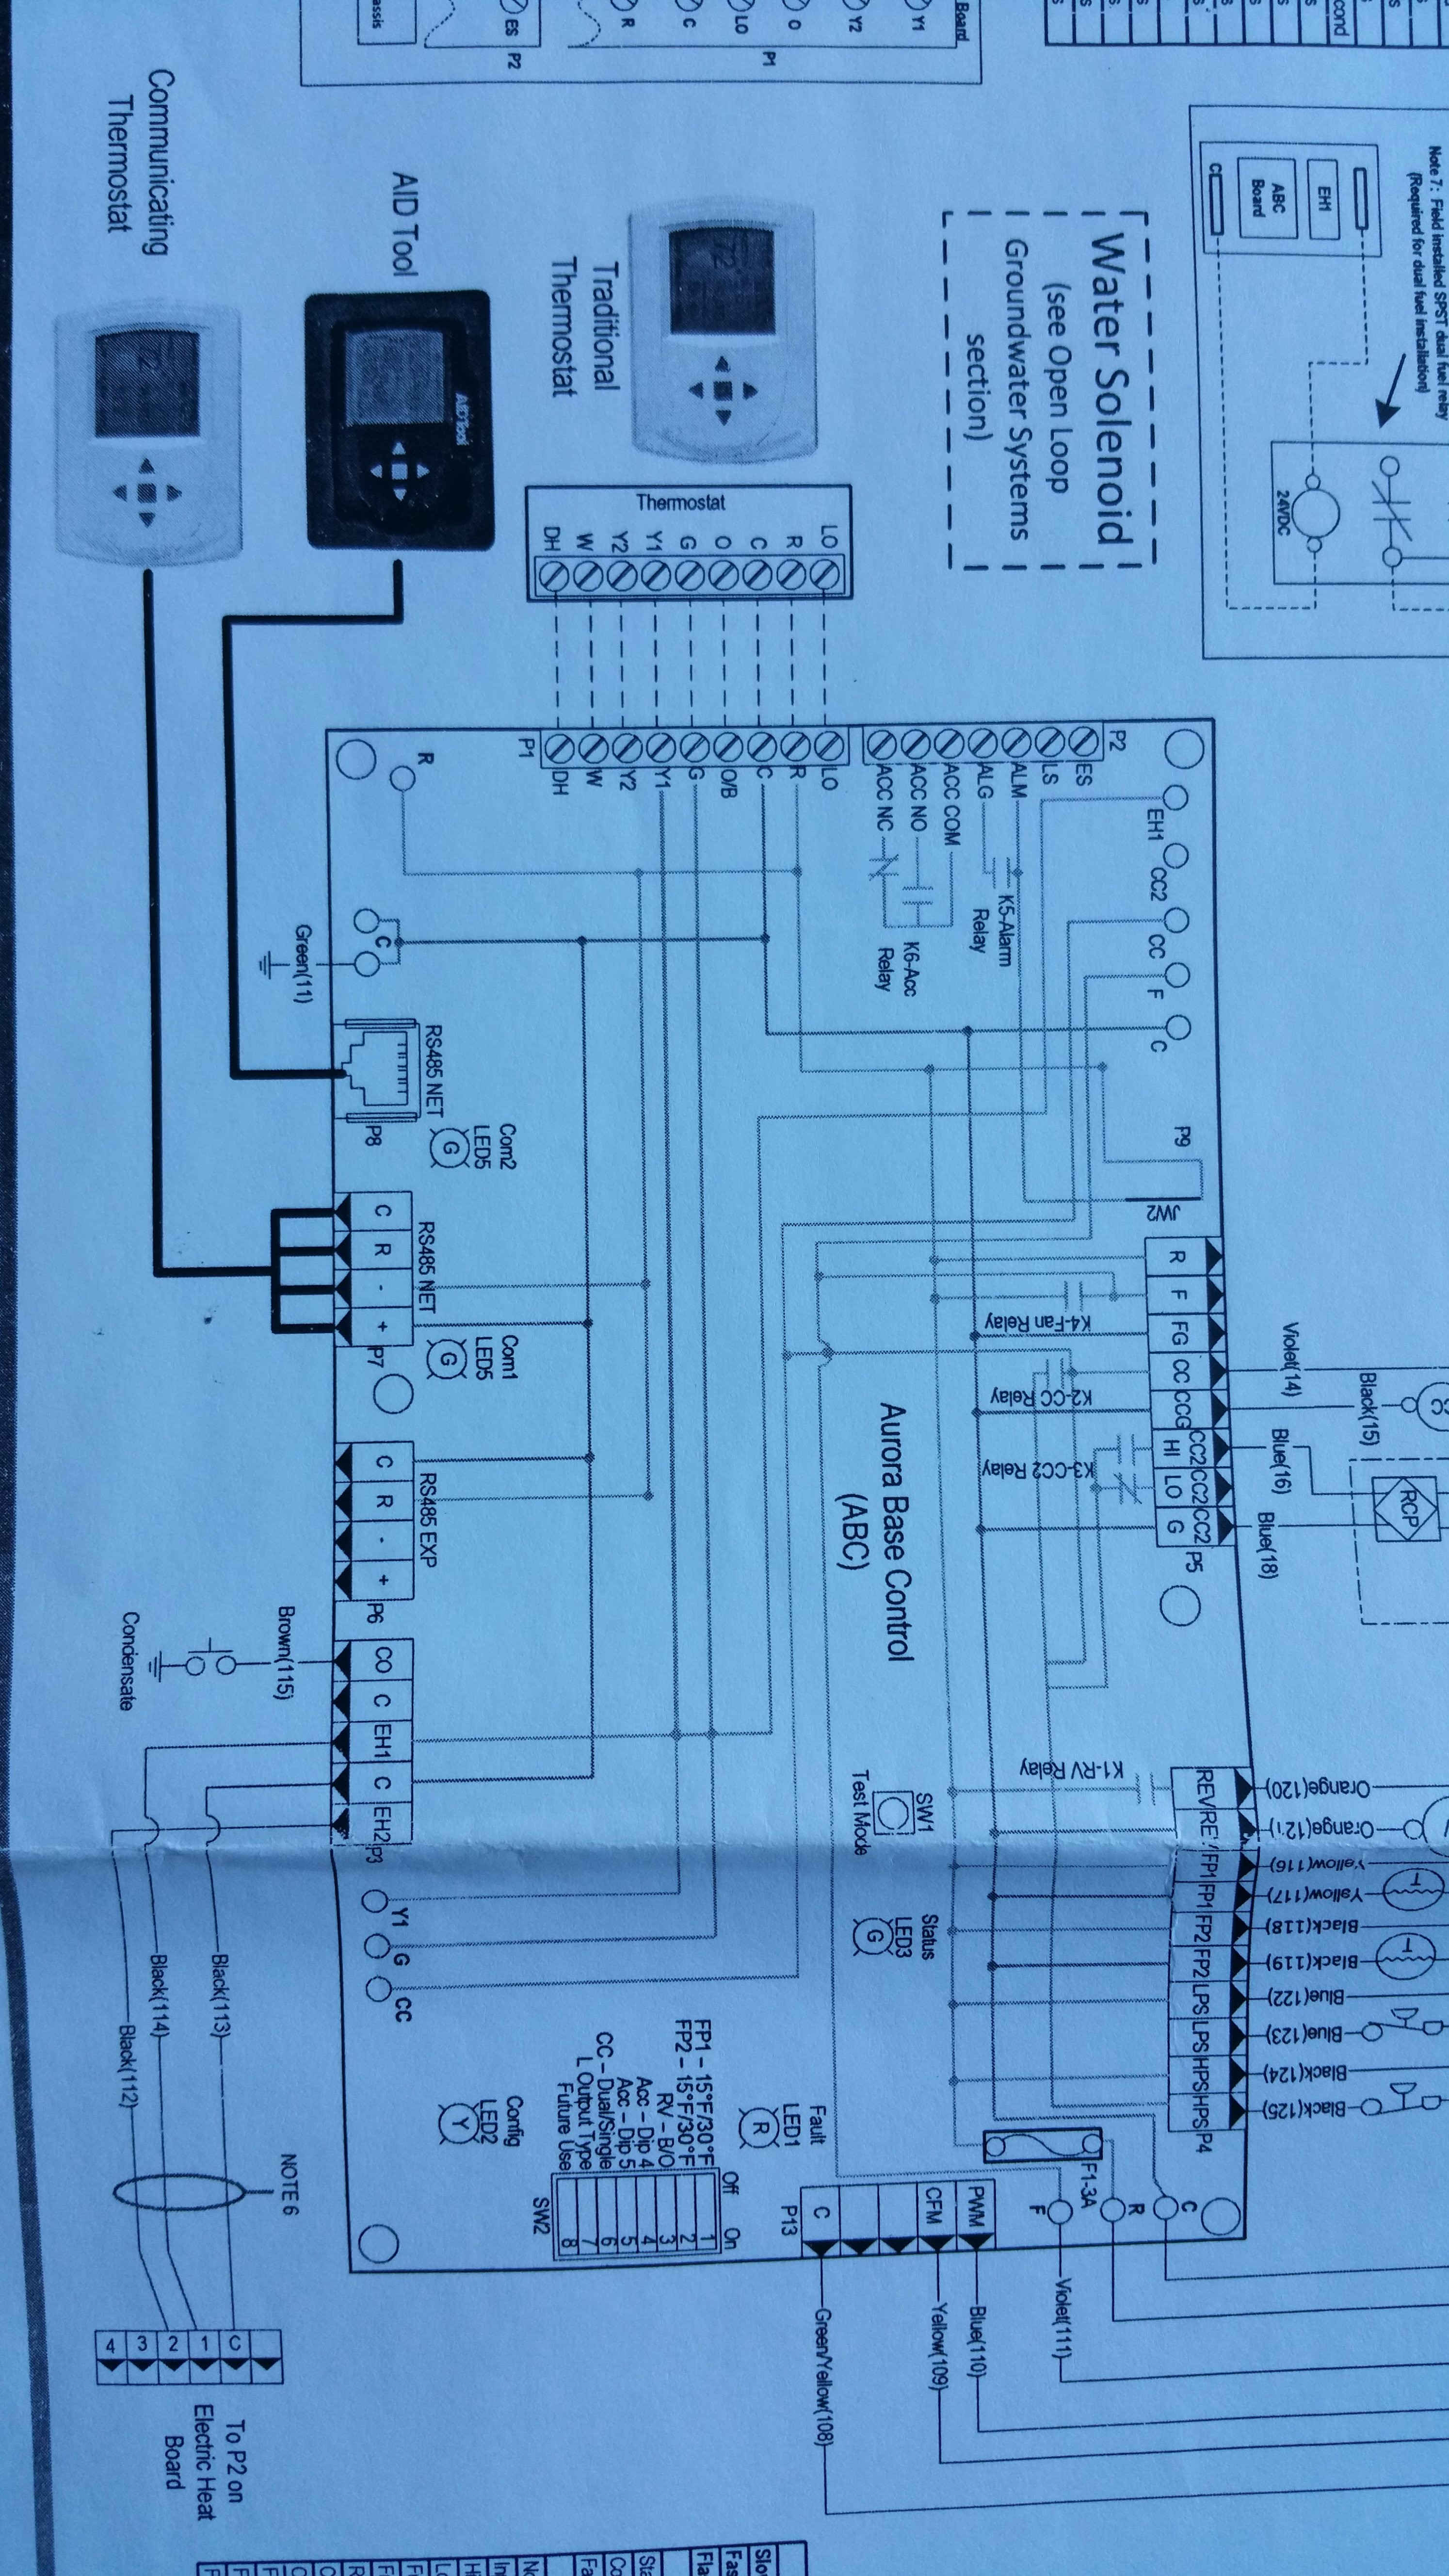 Aprilaire 600 Wiring Diagram Wireing An Aprilaire 700 to Waterfurnace 5 Of Aprilaire 600 Wiring Diagram